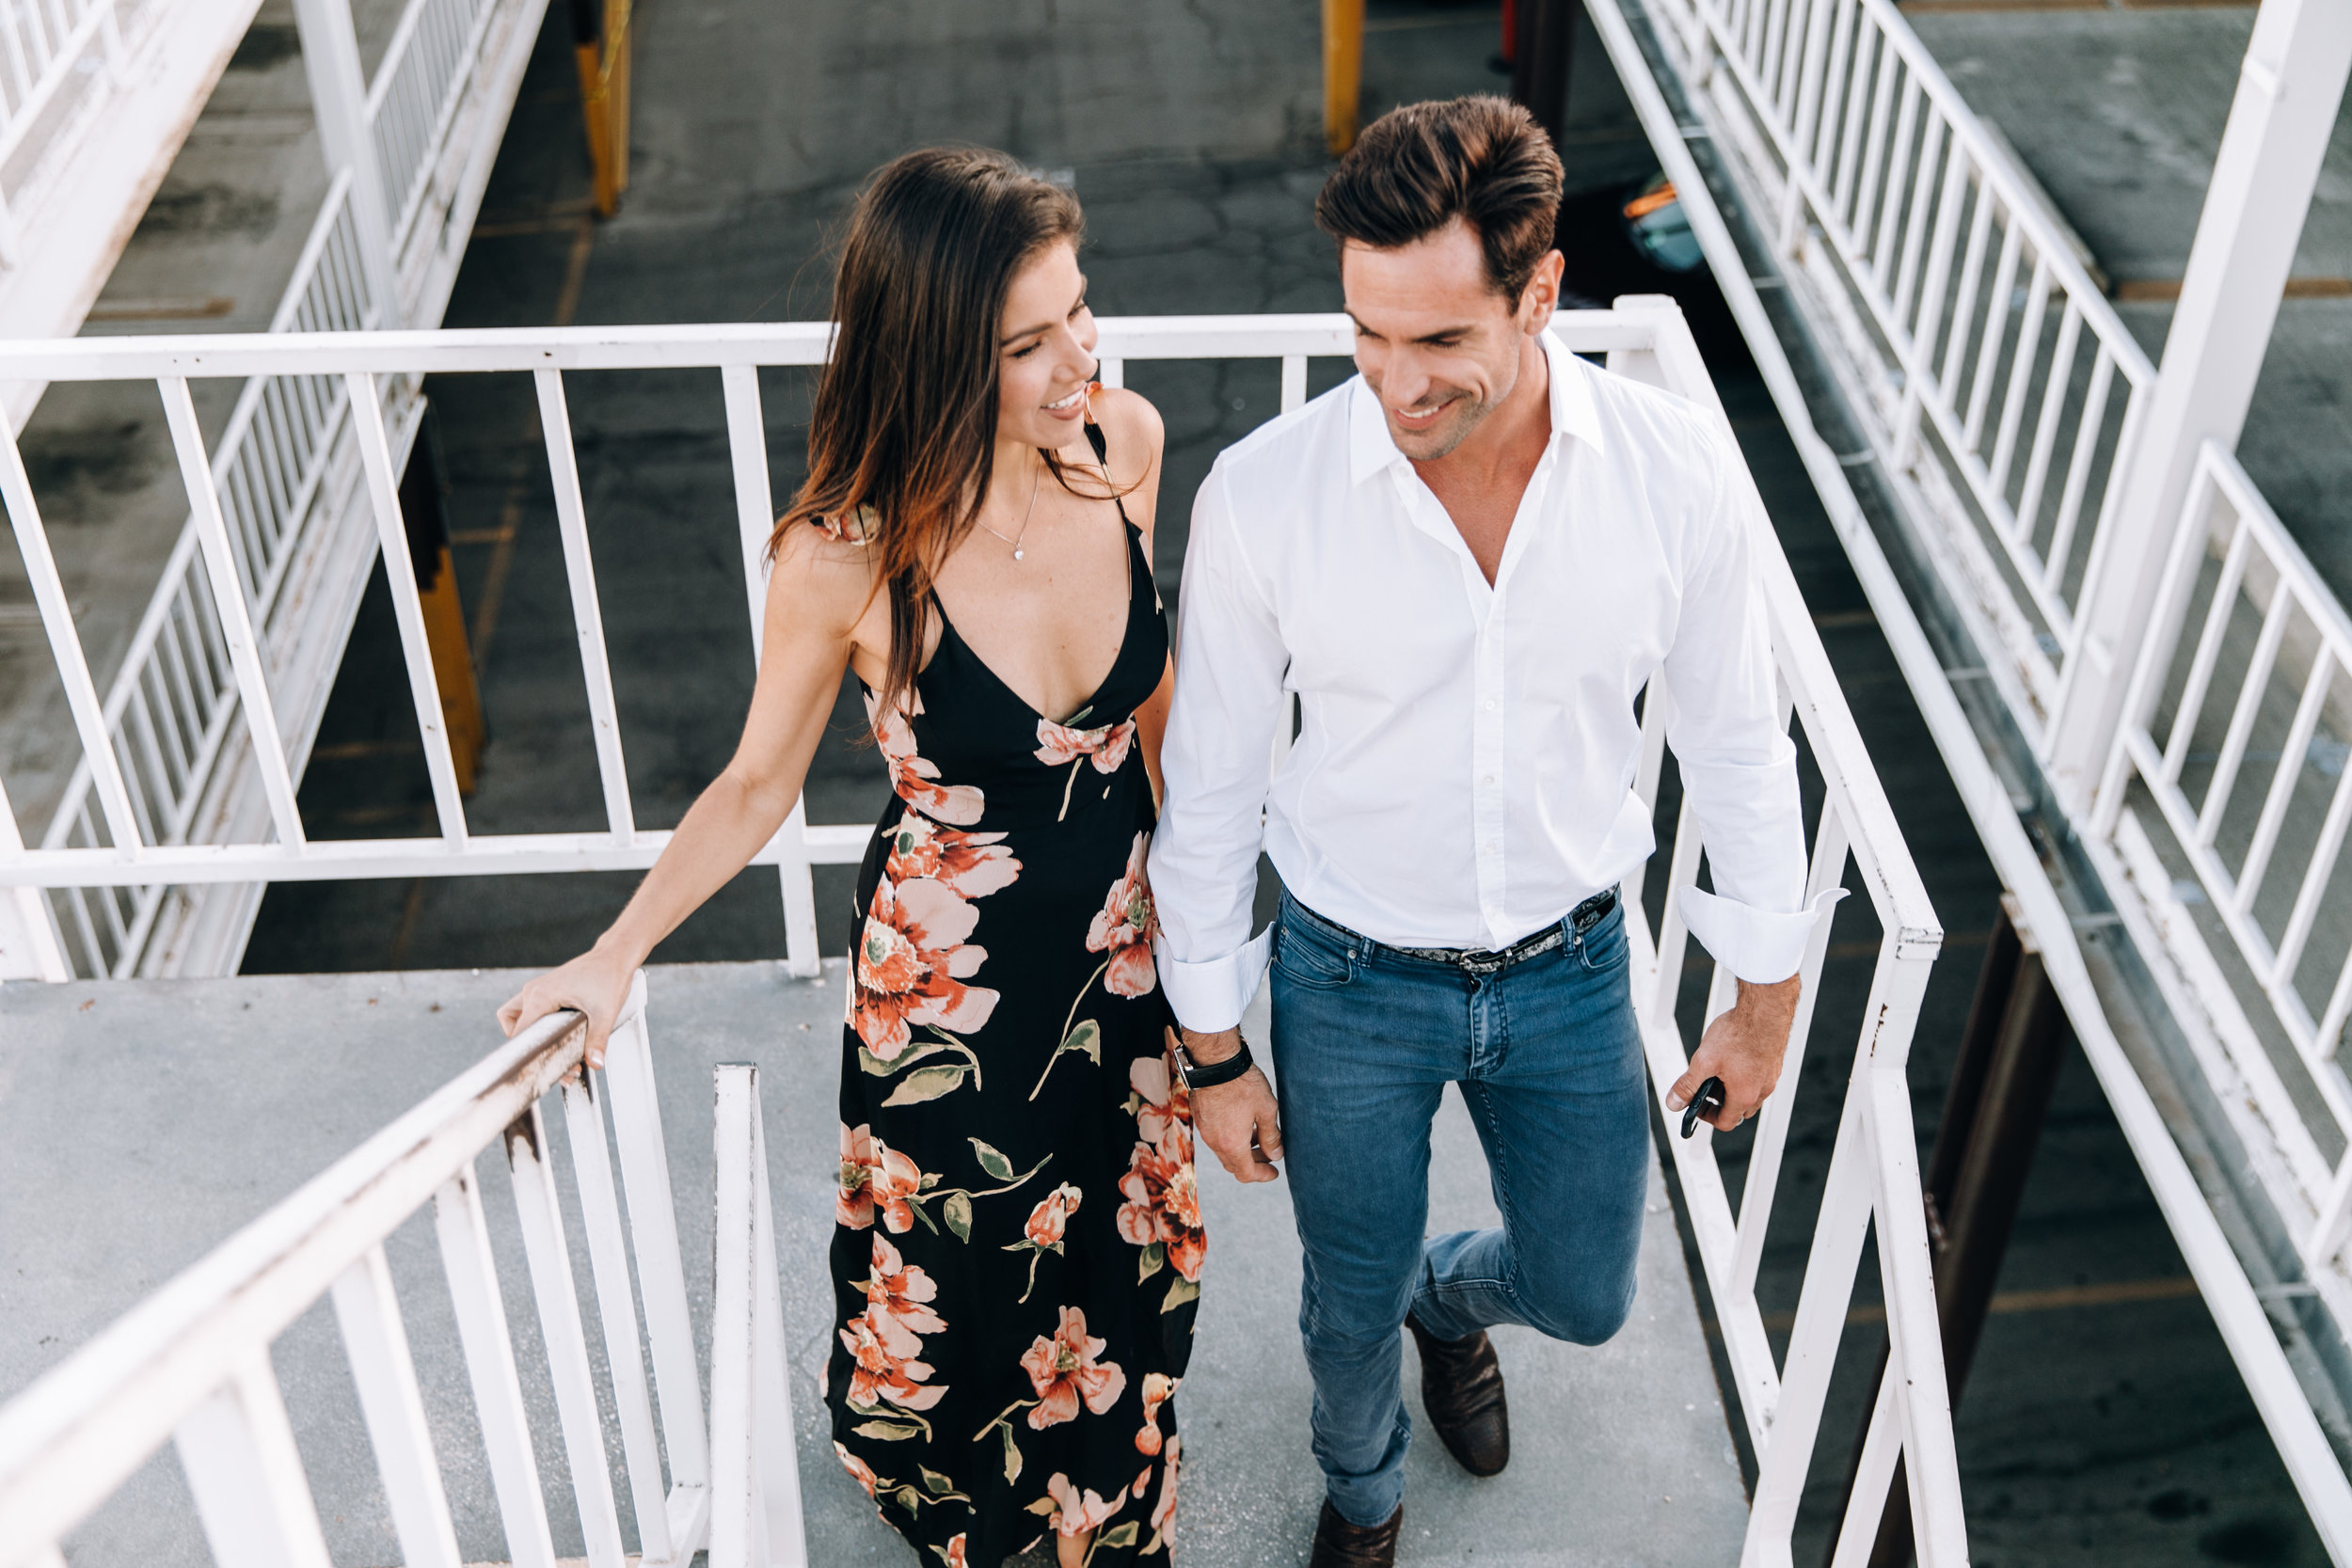 LA engagement photographer, Southern California engagement photographer, Los Angeles engagement photographer, SoCal engagement photographer, DTLA engagement session, Downtown LA engagement session